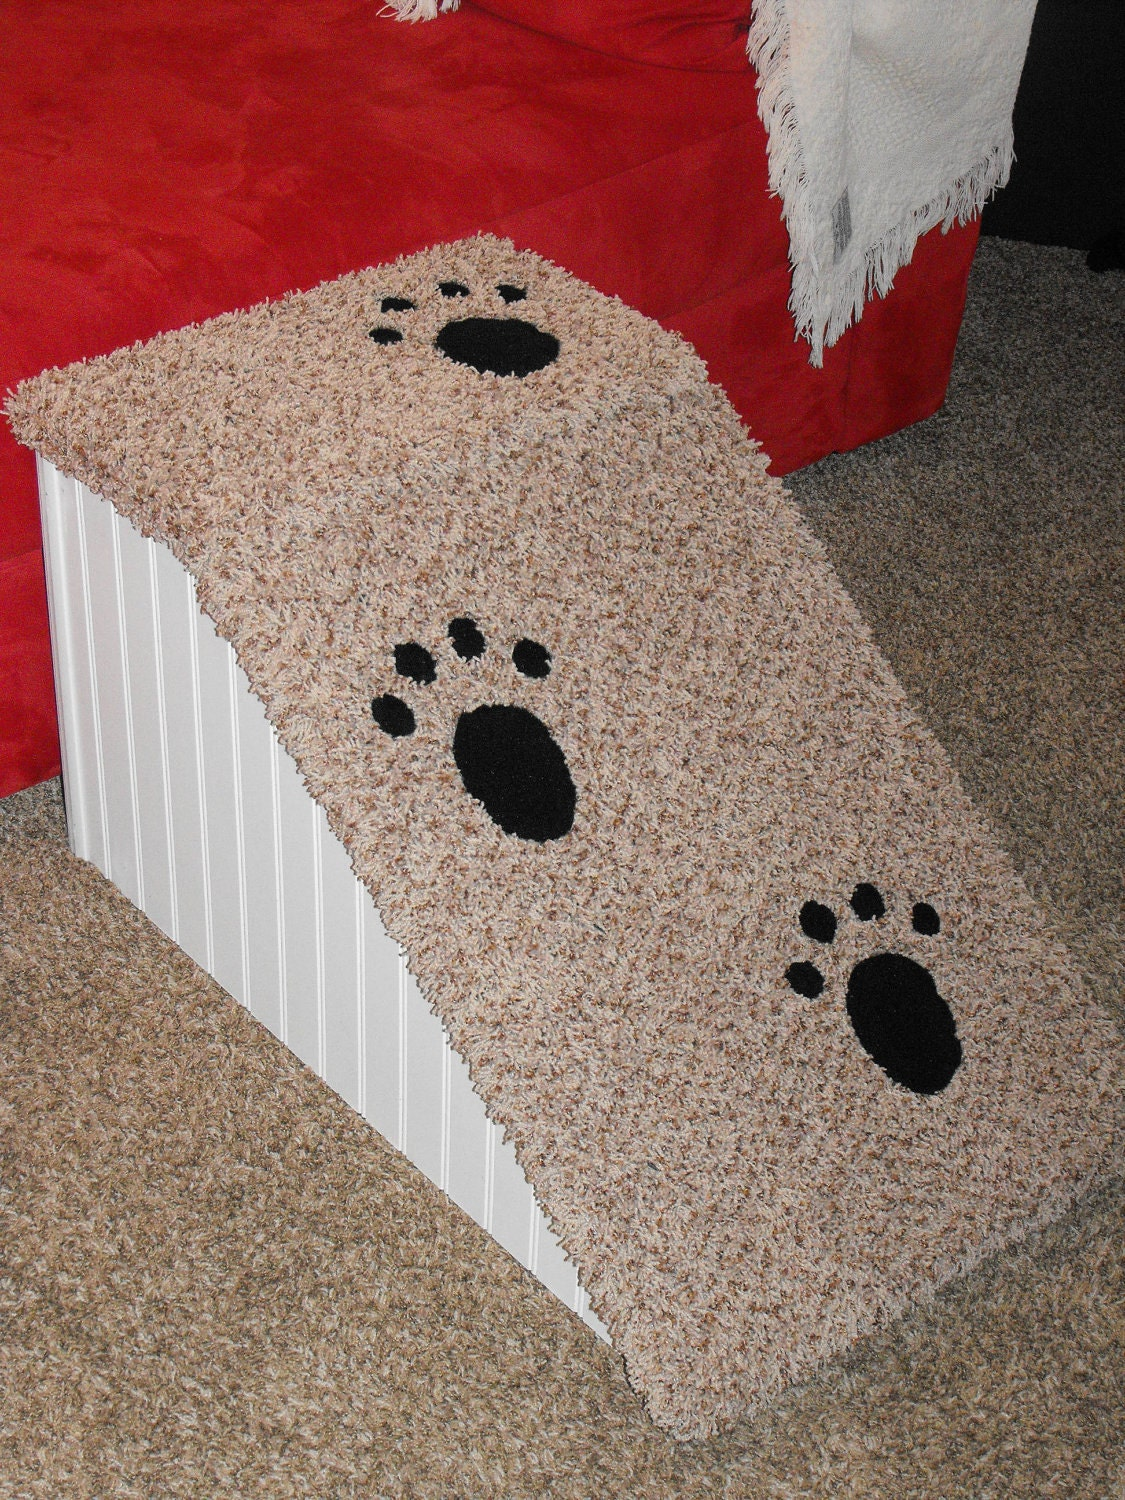 18 Inch High Dog Ramp Perfect For Long Bodied Dogs Like